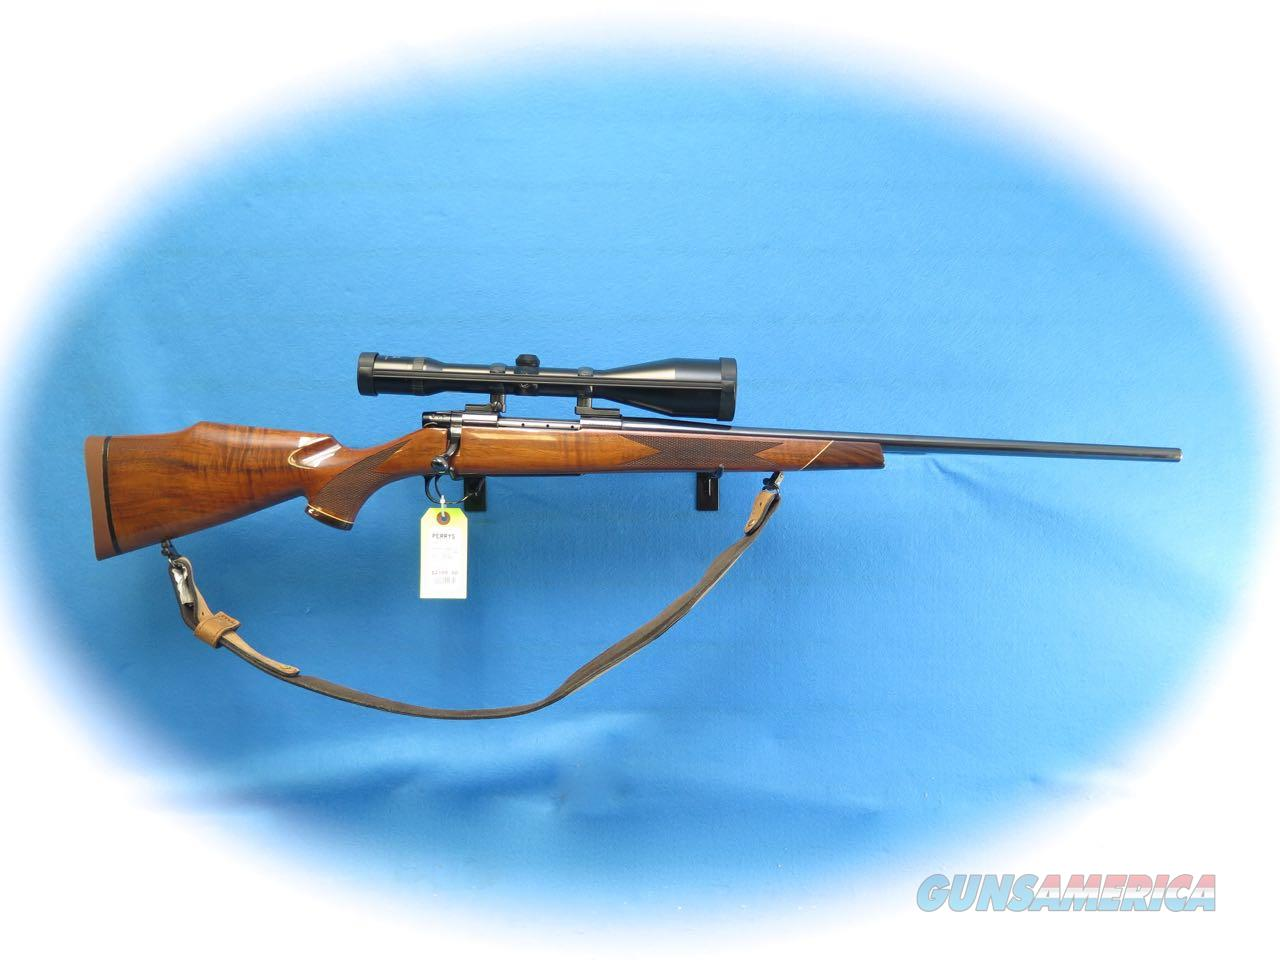 **PRICE REDUCED** Weatherby Vanguard Deluxe Series 1 .257 Weatherby Cal W/ Zeiss Scope **Used**  Guns > Rifles > Weatherby Rifles > Sporting